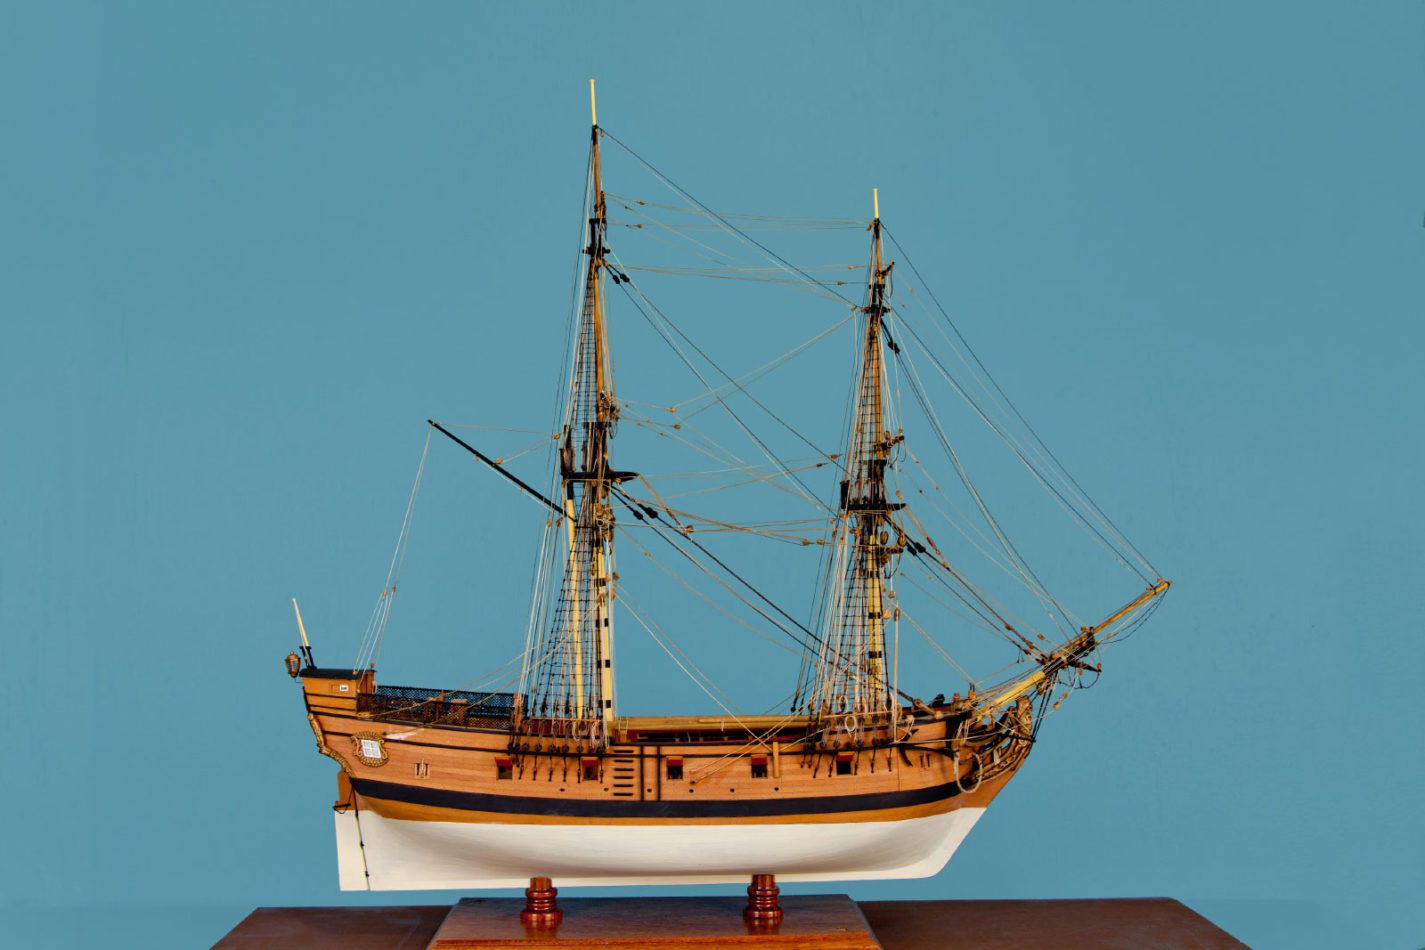 San Carlos model ship at the Ships of the World exhibit at San Mateo County History Museum